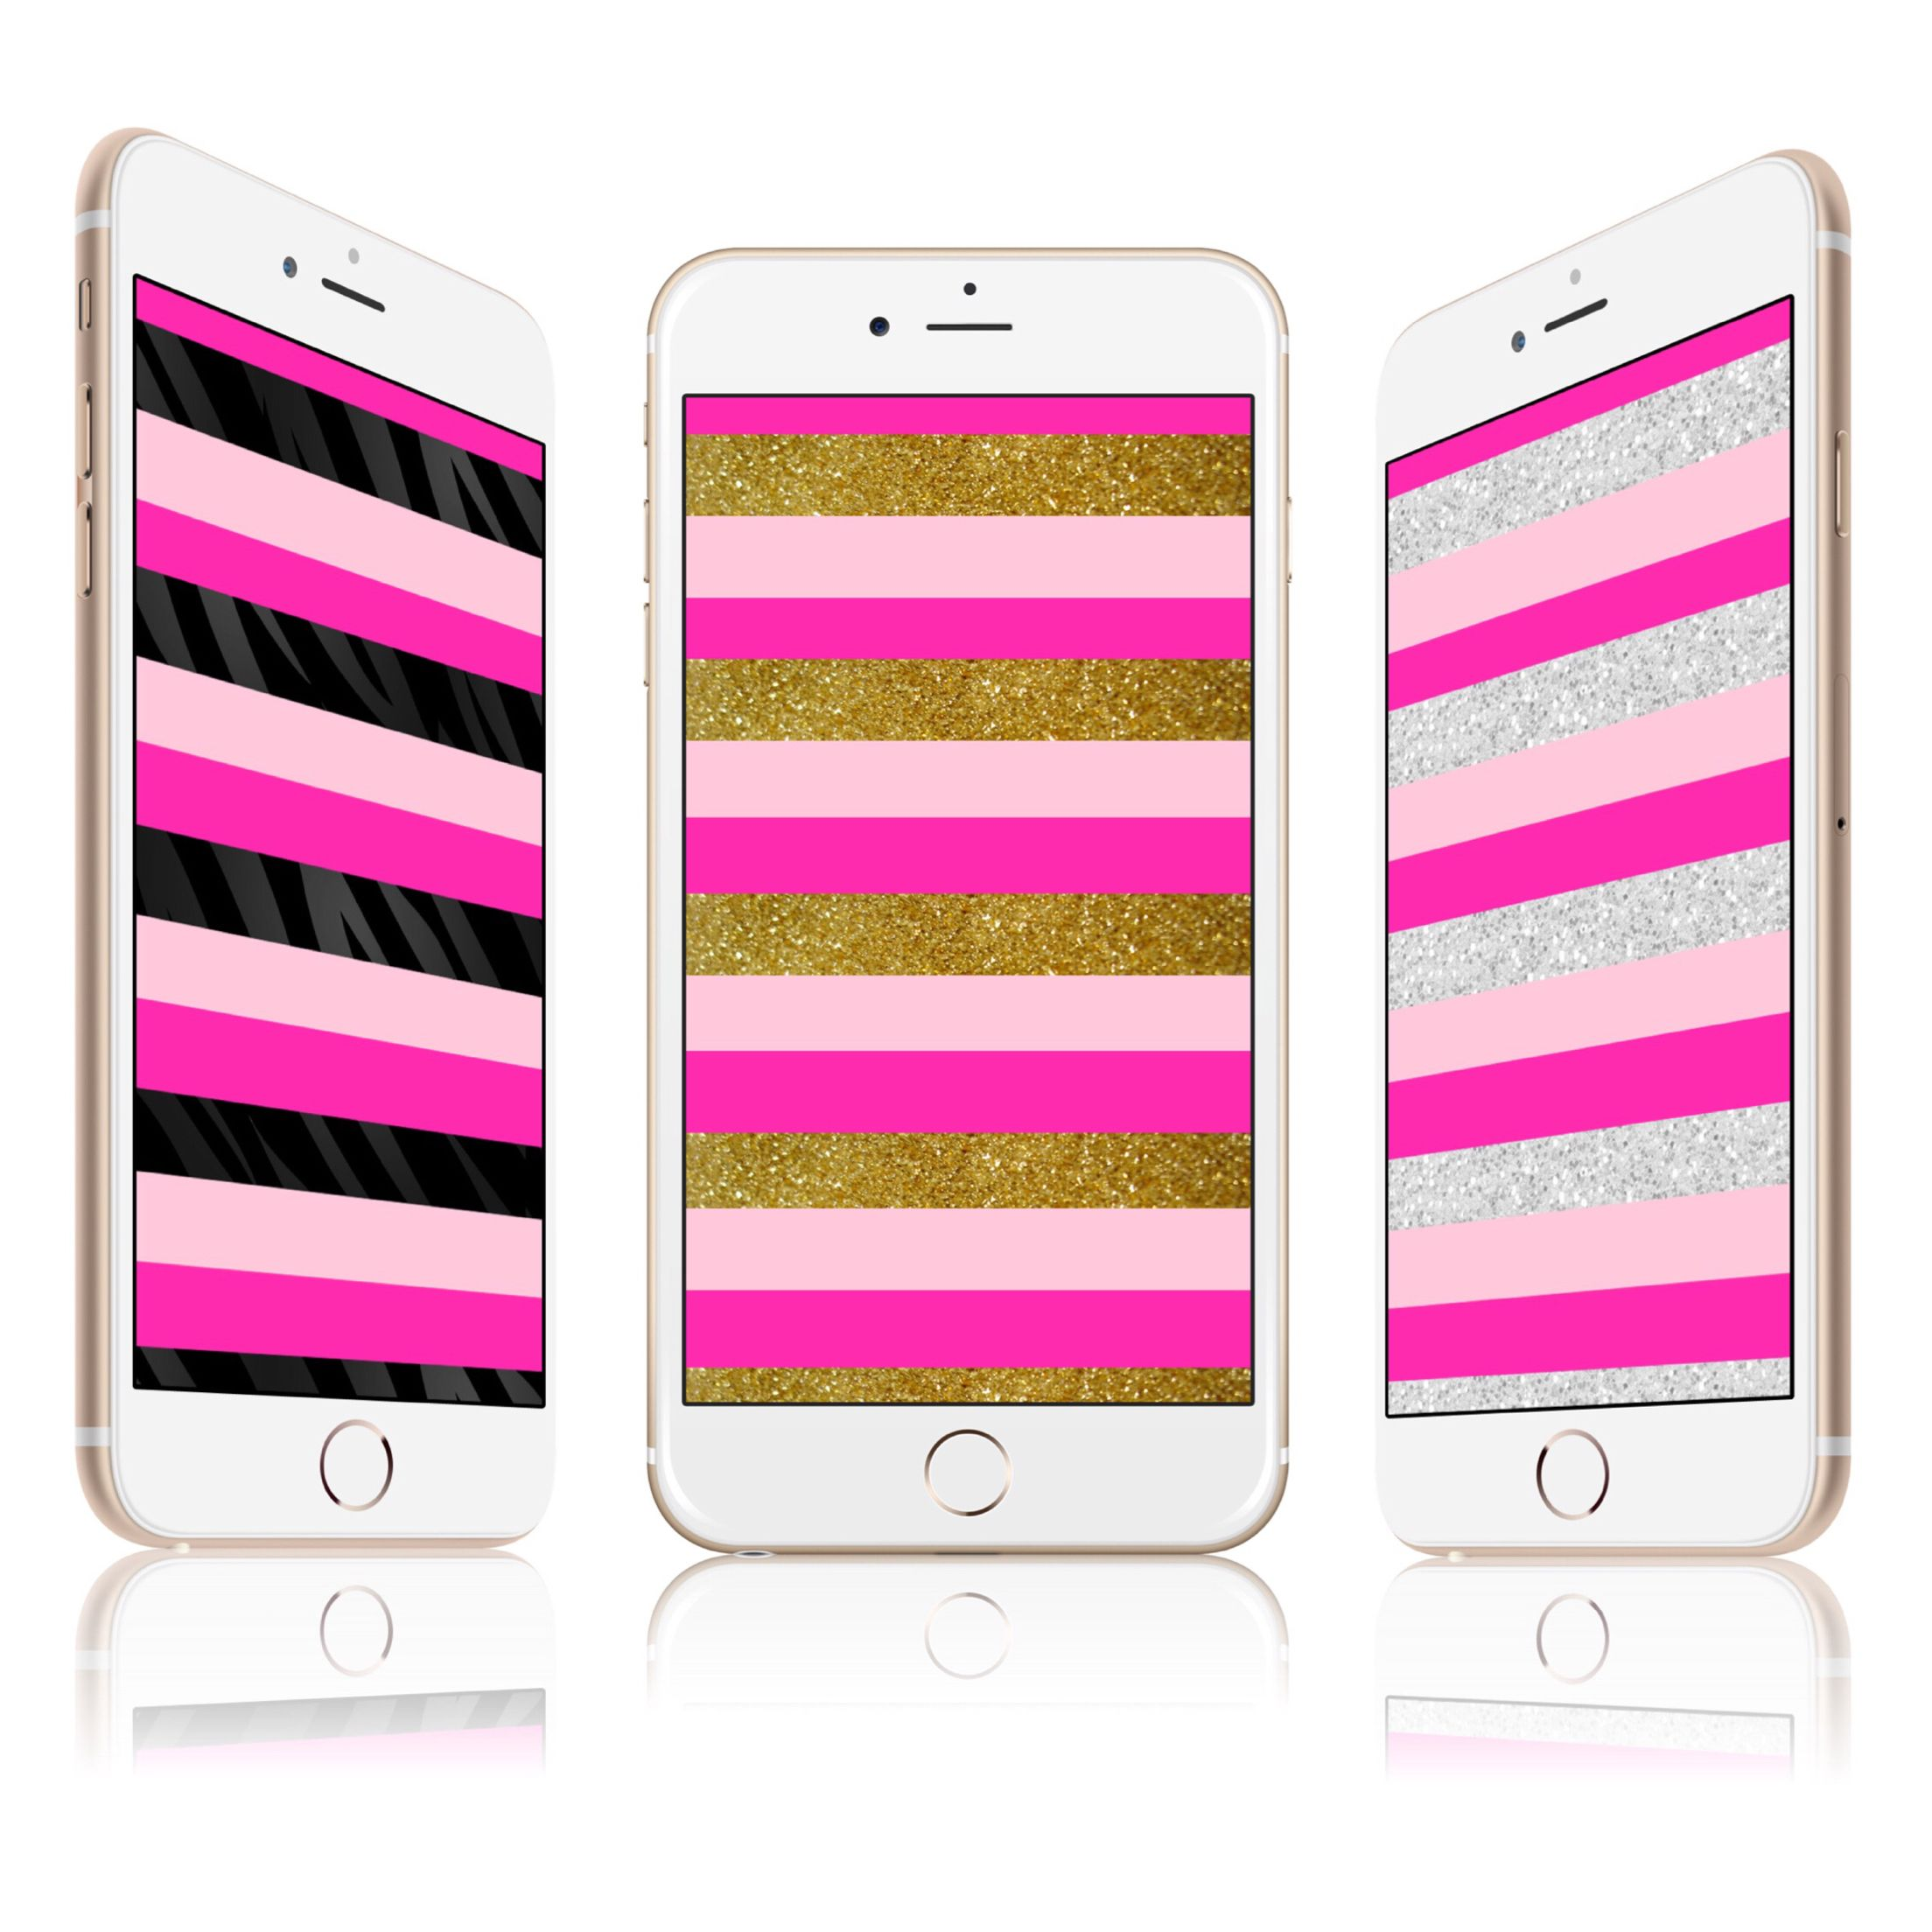 3 new wallpapers to fit iphone and android devices click image to be taken to